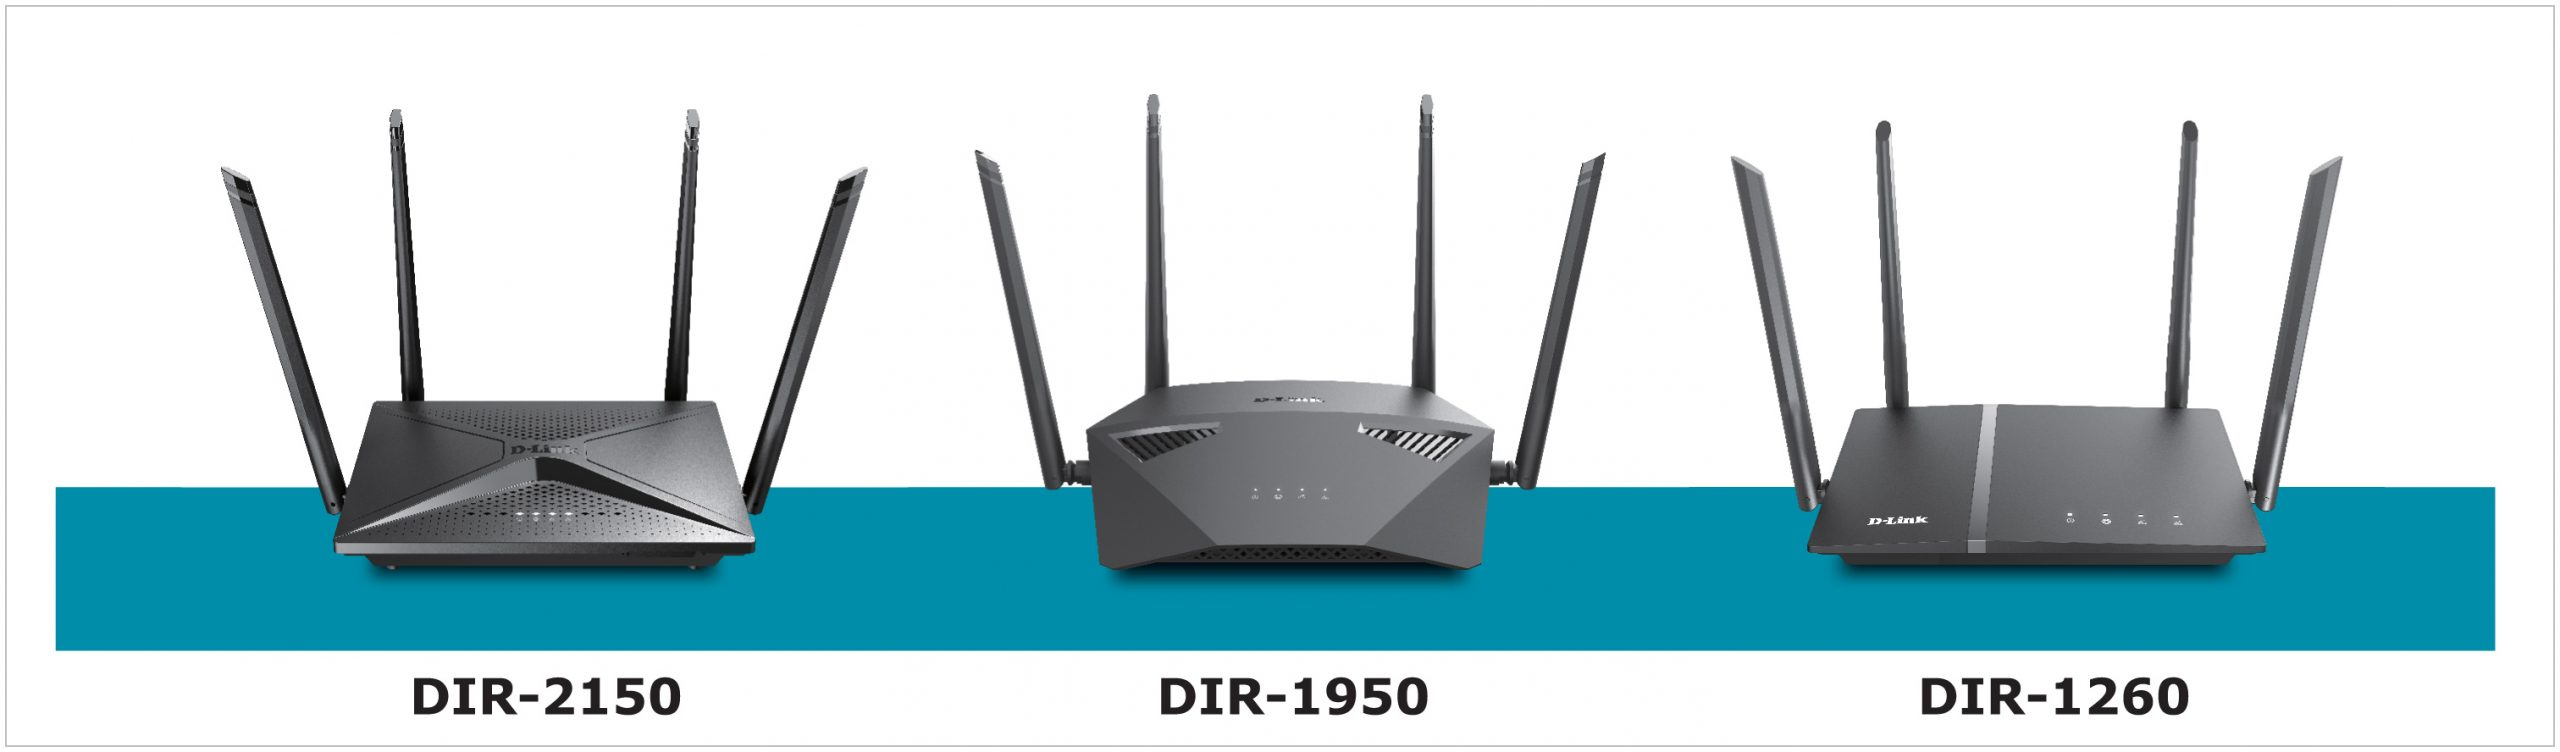 D-Link's new feature-rich Routers based on 11AC Wireless technology